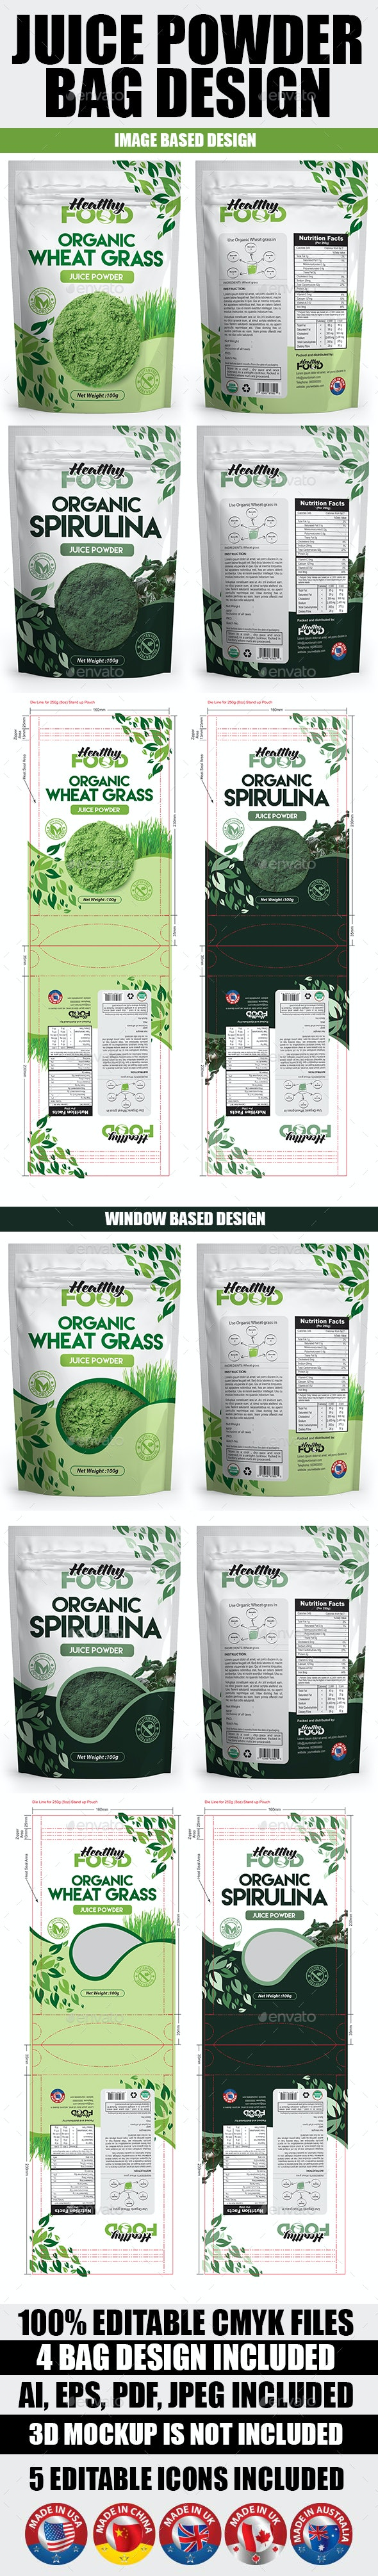 Juice Powder Bag Design Template - Packaging Print Templates